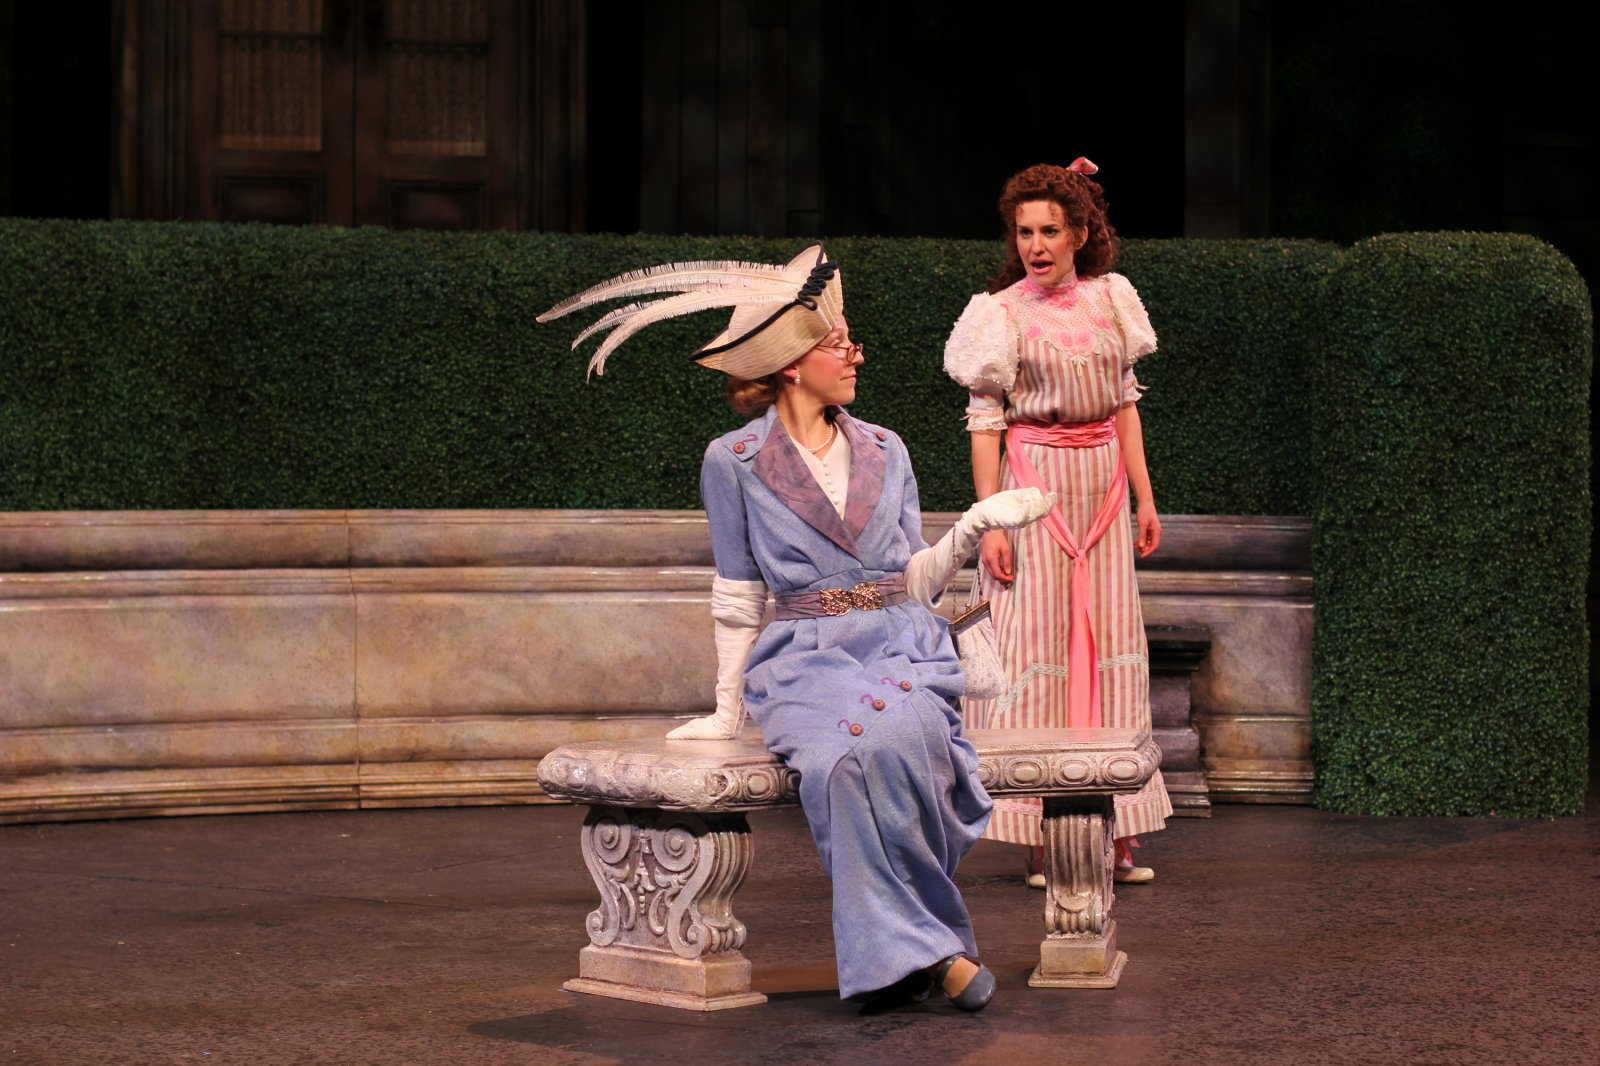 Cristina Panfilio and Kelsey Brennan in The Importance of Being Earnest, 2014.